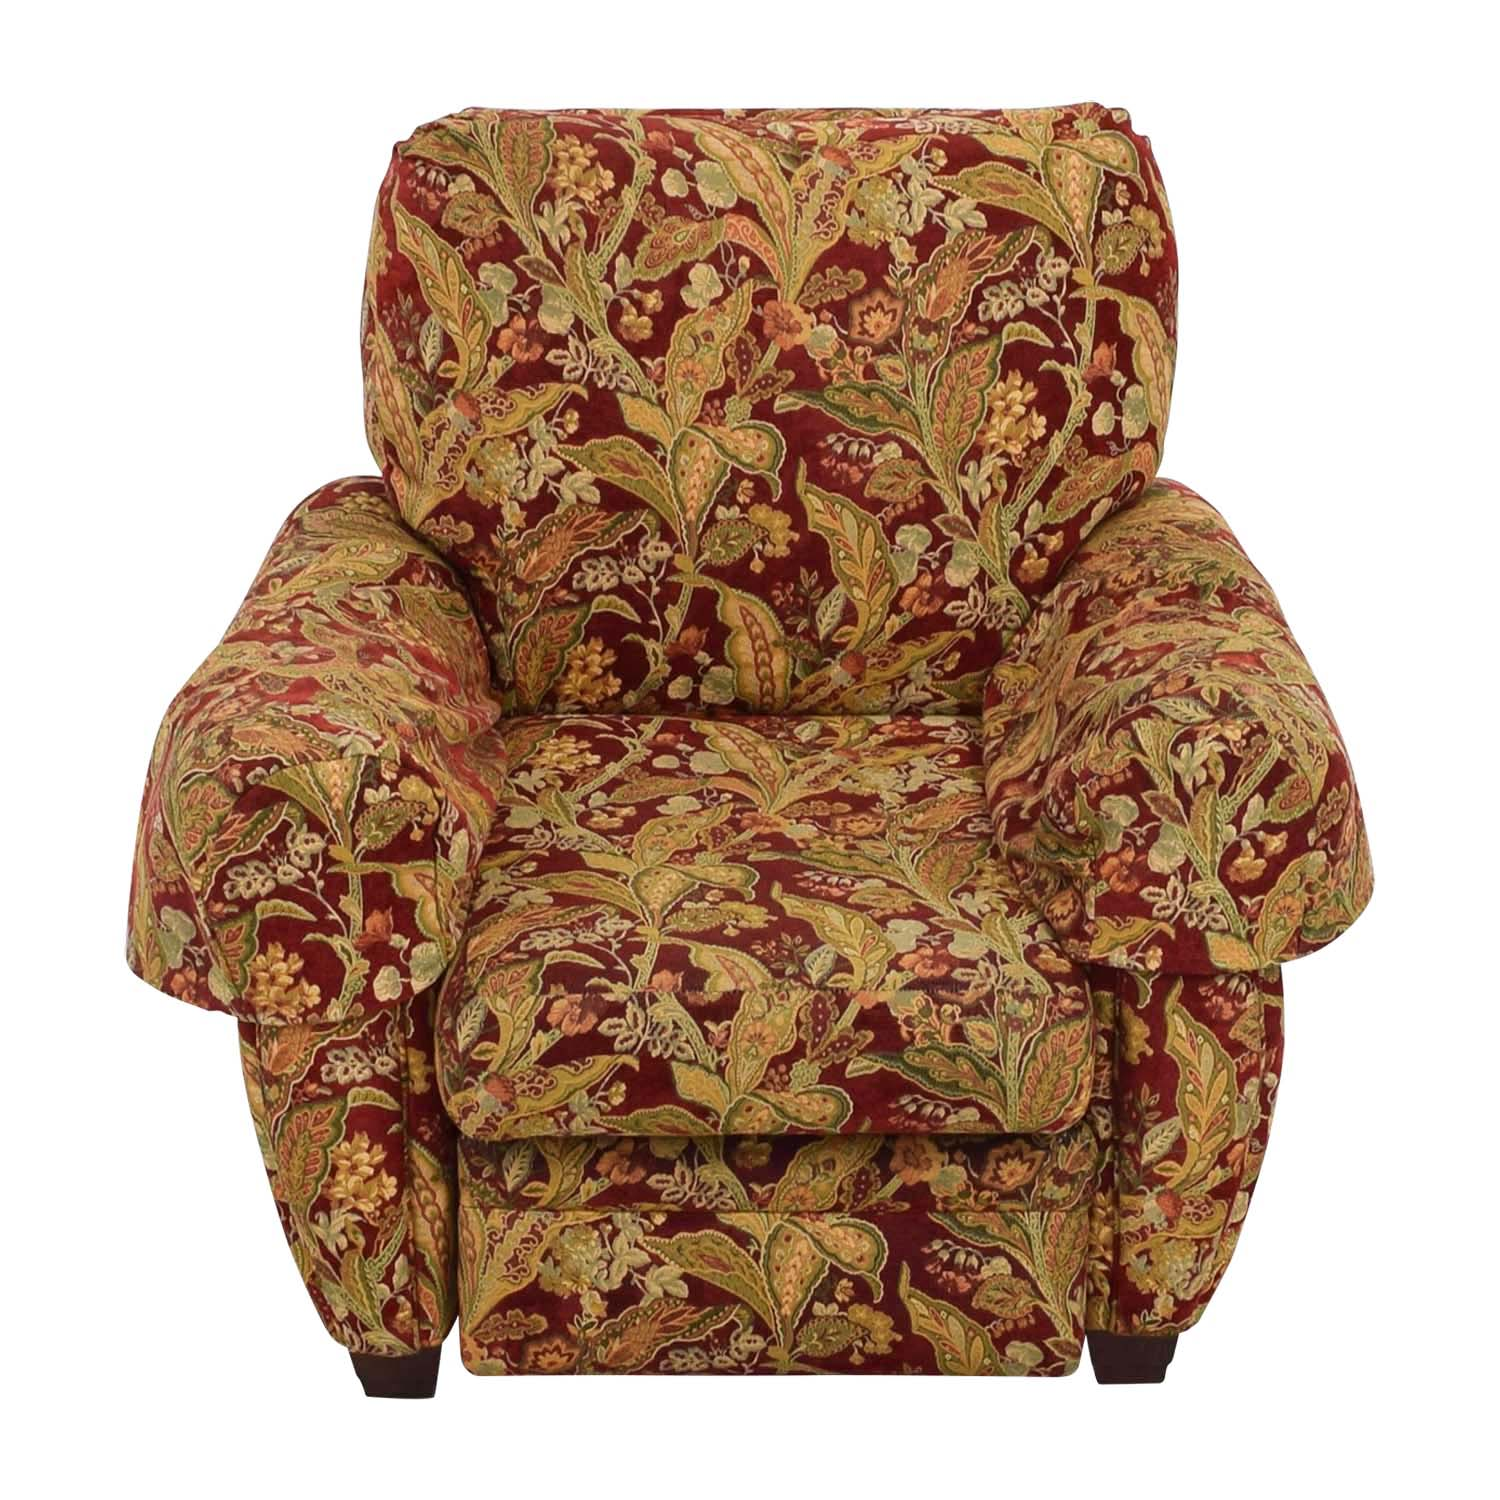 Lazy Boy Burgundy Floral Recliner / Accent Chairs